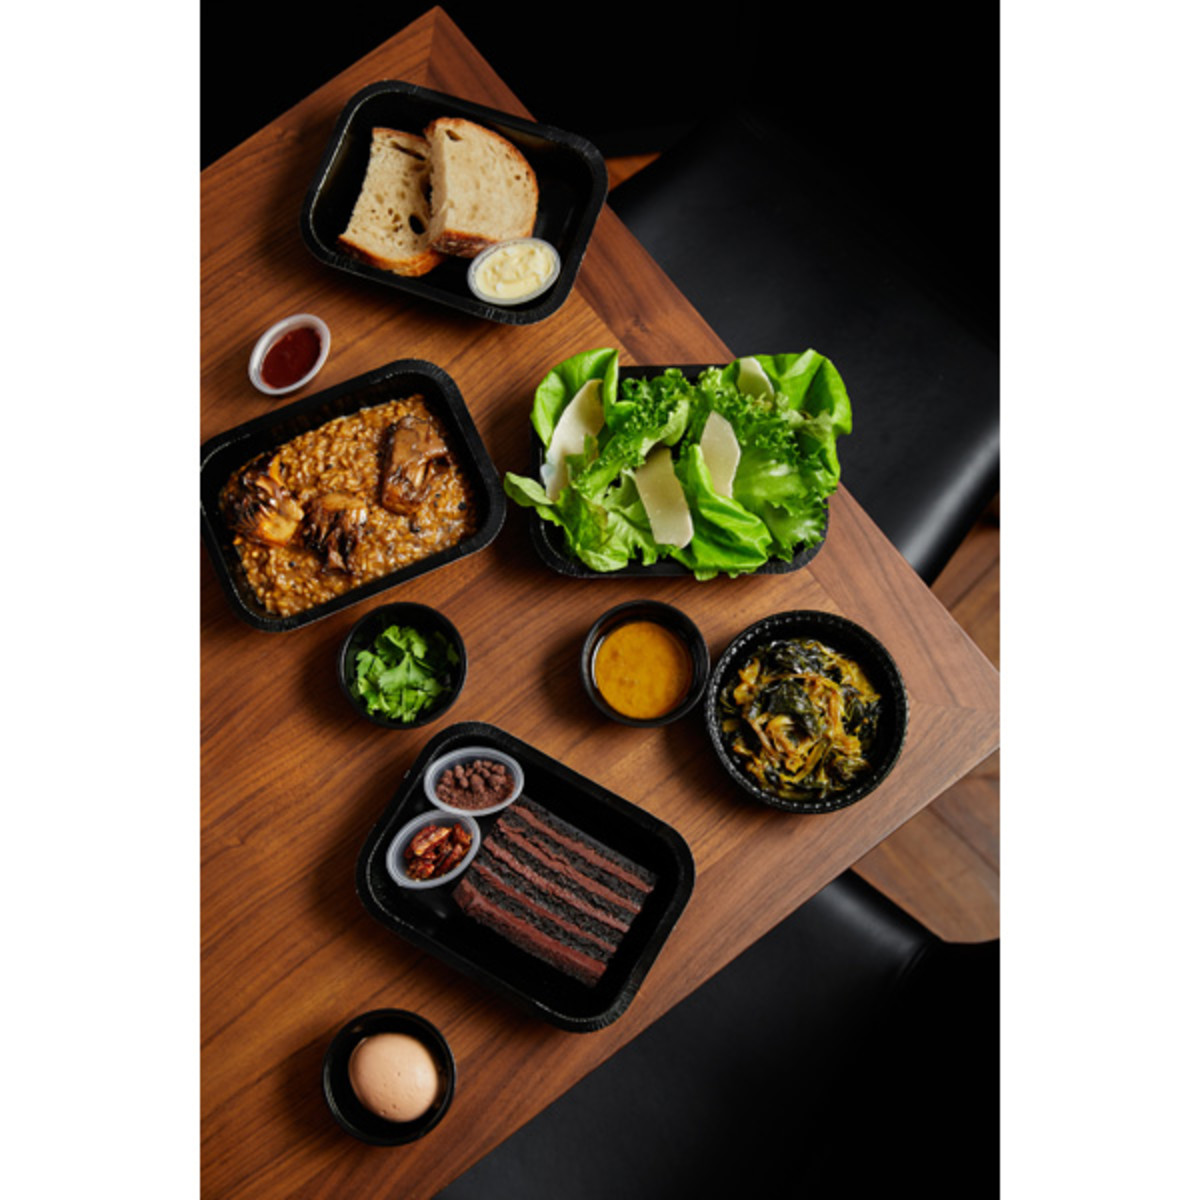 A vegetarian option from the INTERSECT BY LEXUS - NYC dine-away/delivery program